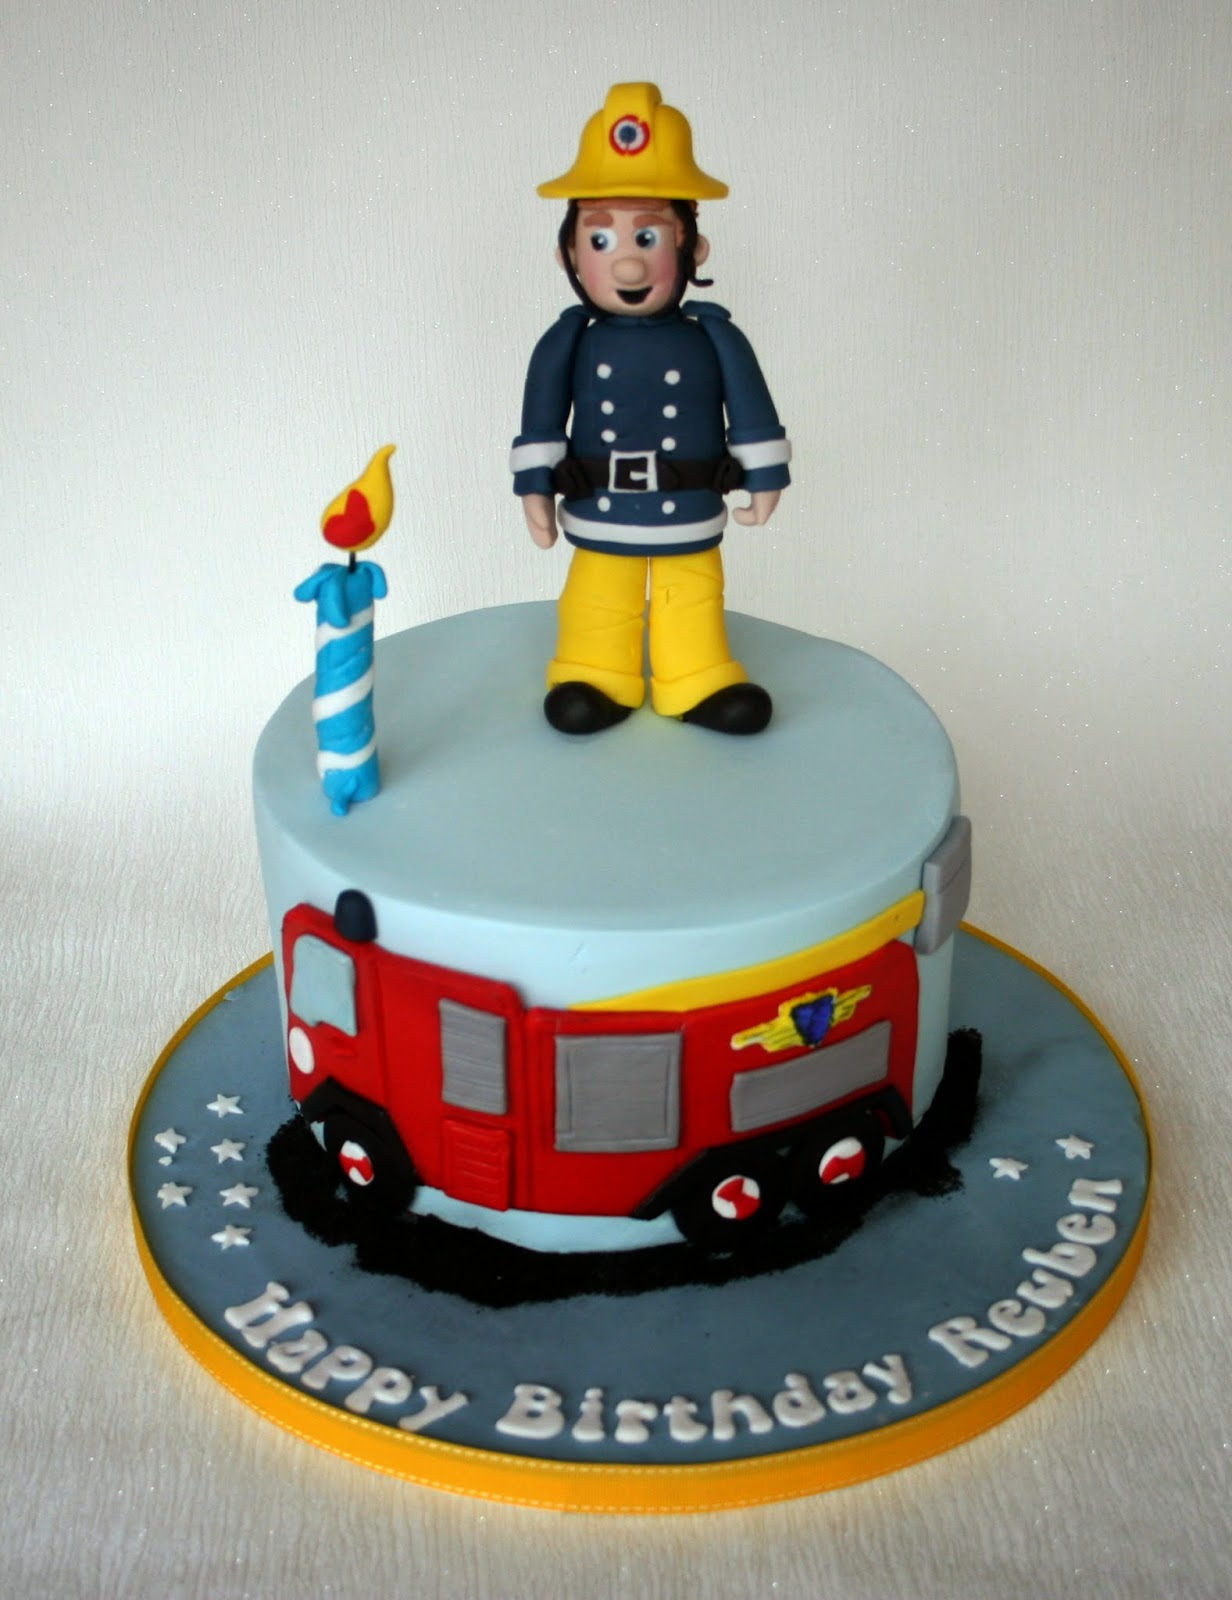 The Perfectionist Confectionist Fireman Sam